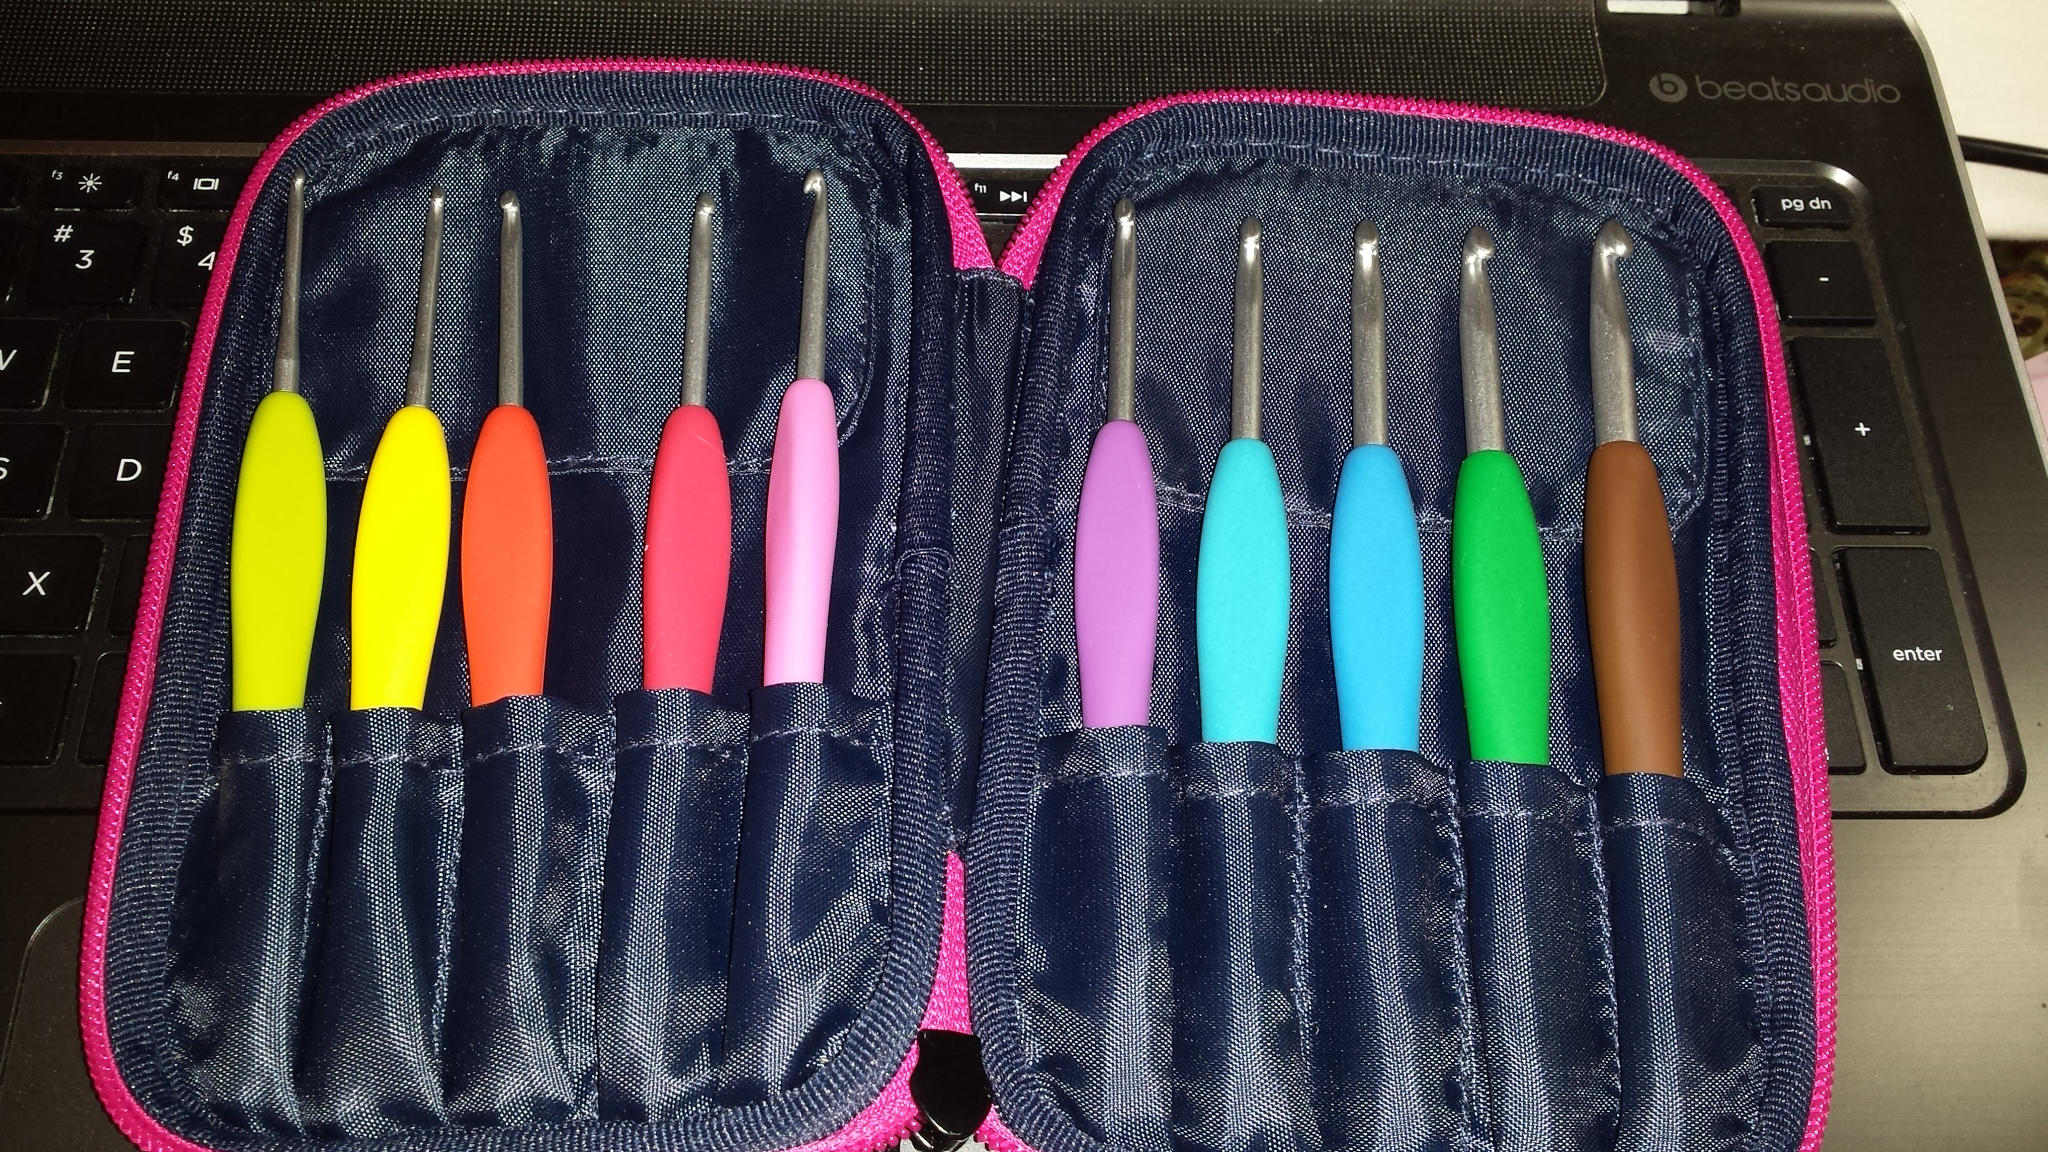 My New Clover Amour Crochet Hooks by Crochet-by-Clarissa